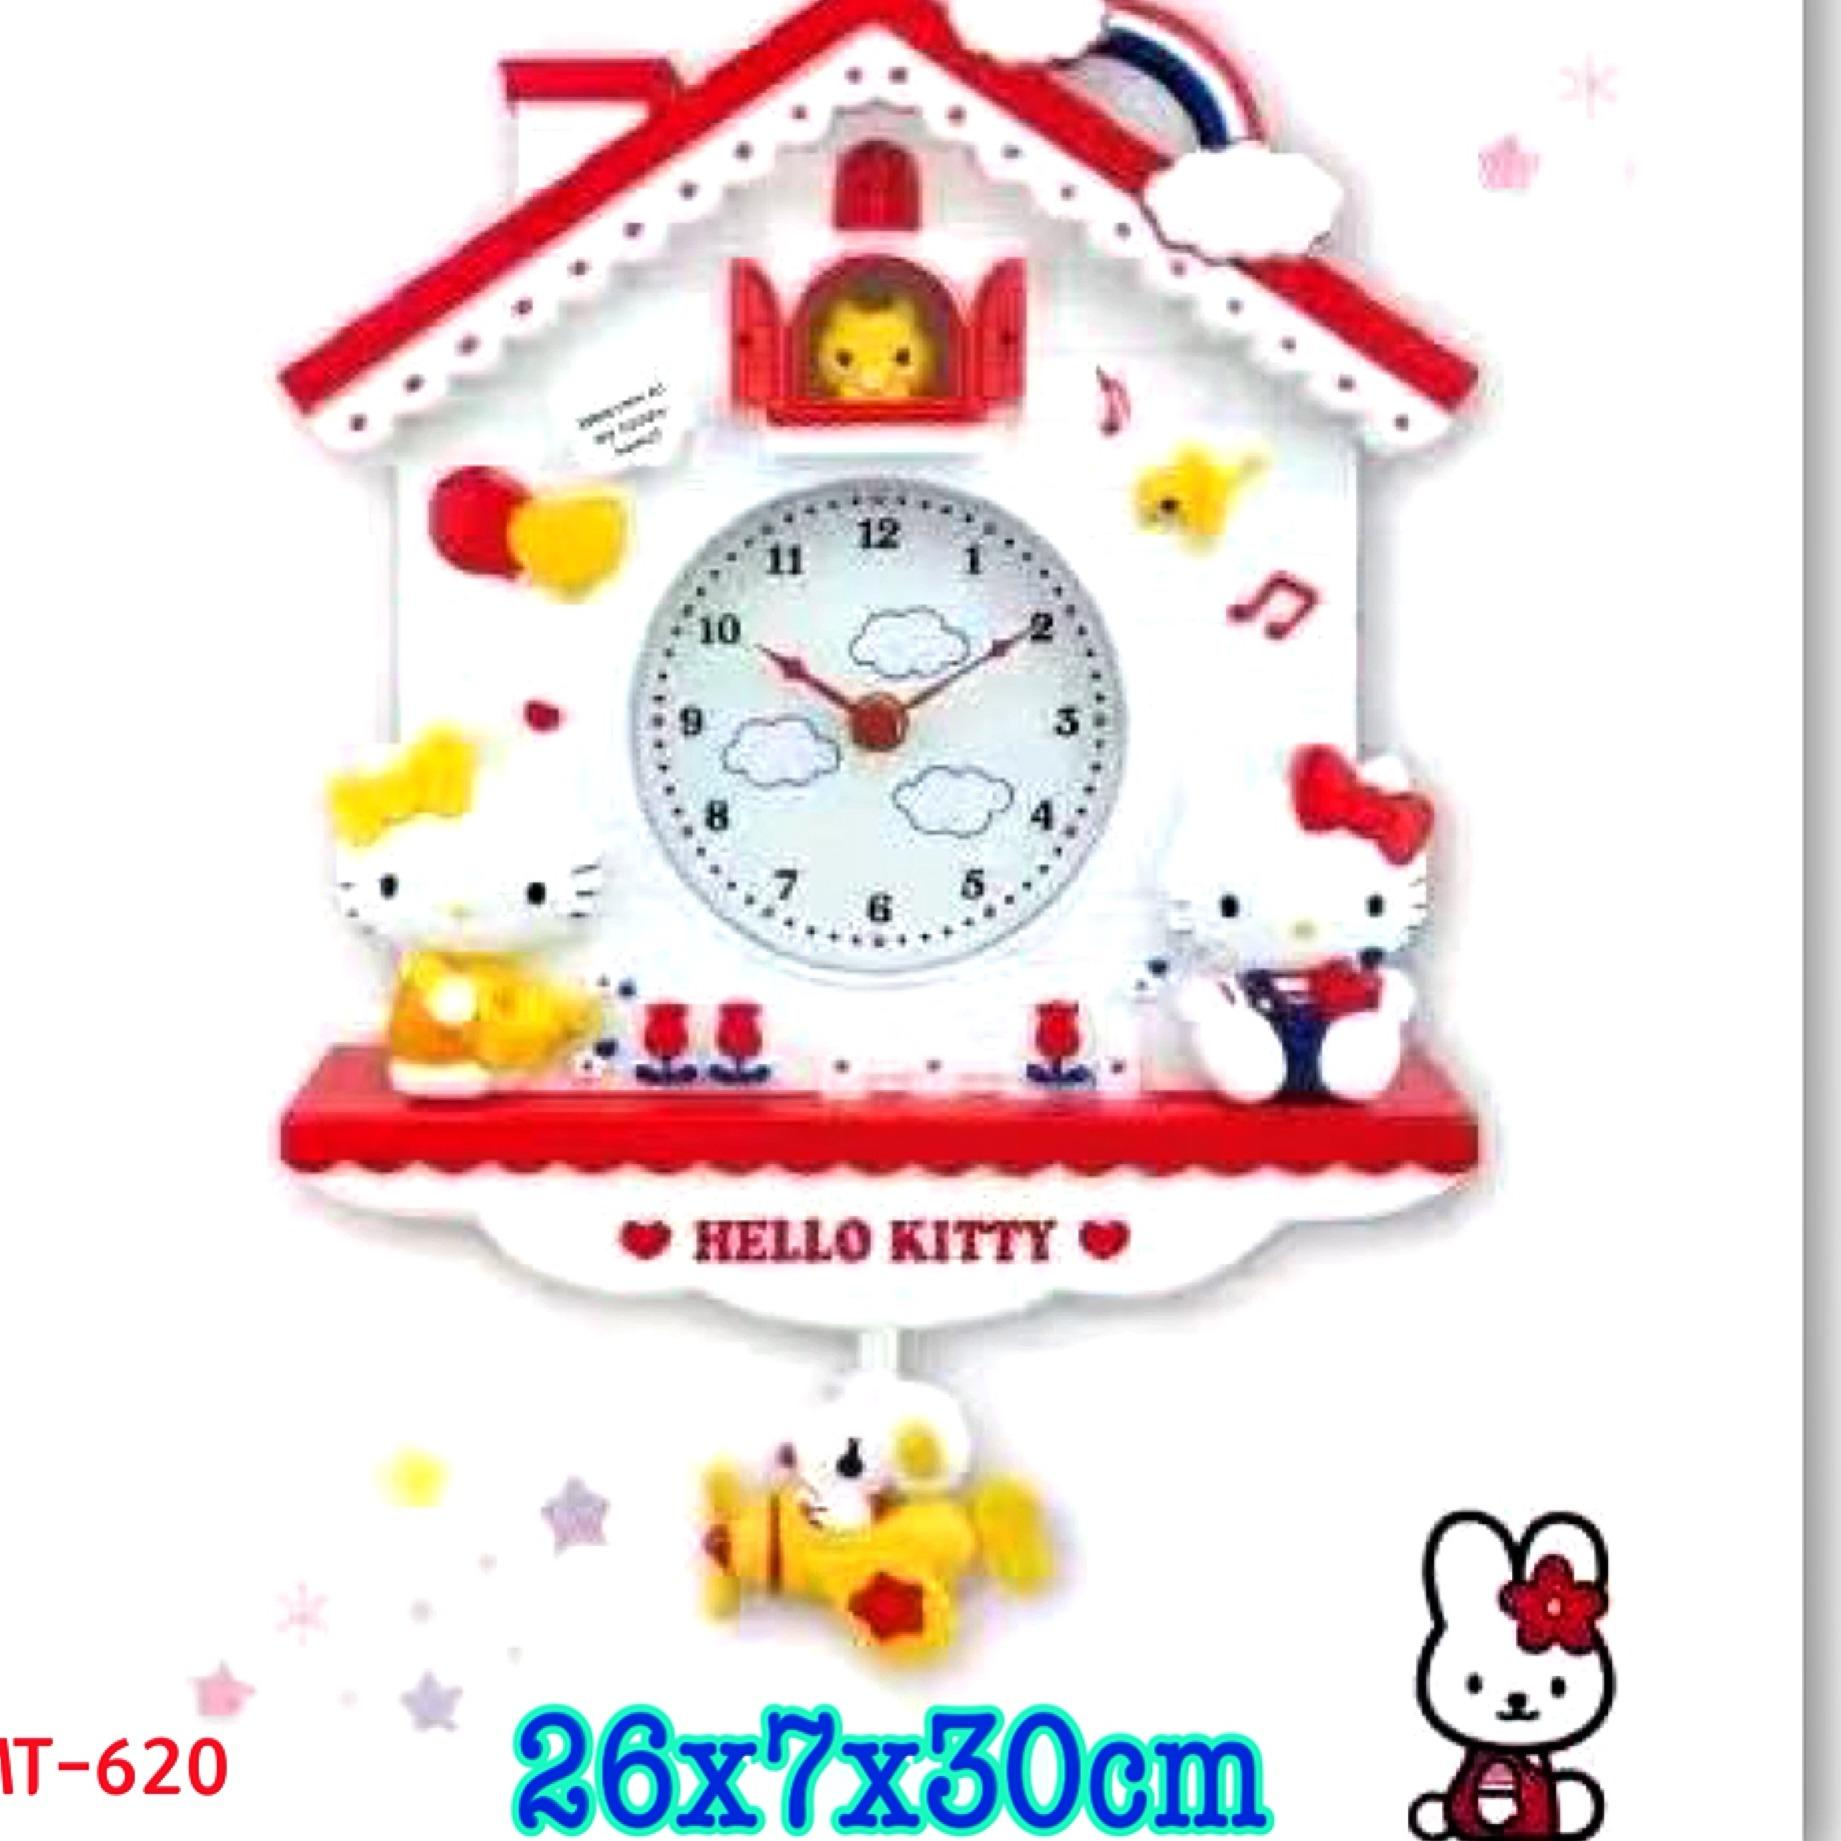 Jam Dinding Bandul Model Rumah Hello kitty MT620